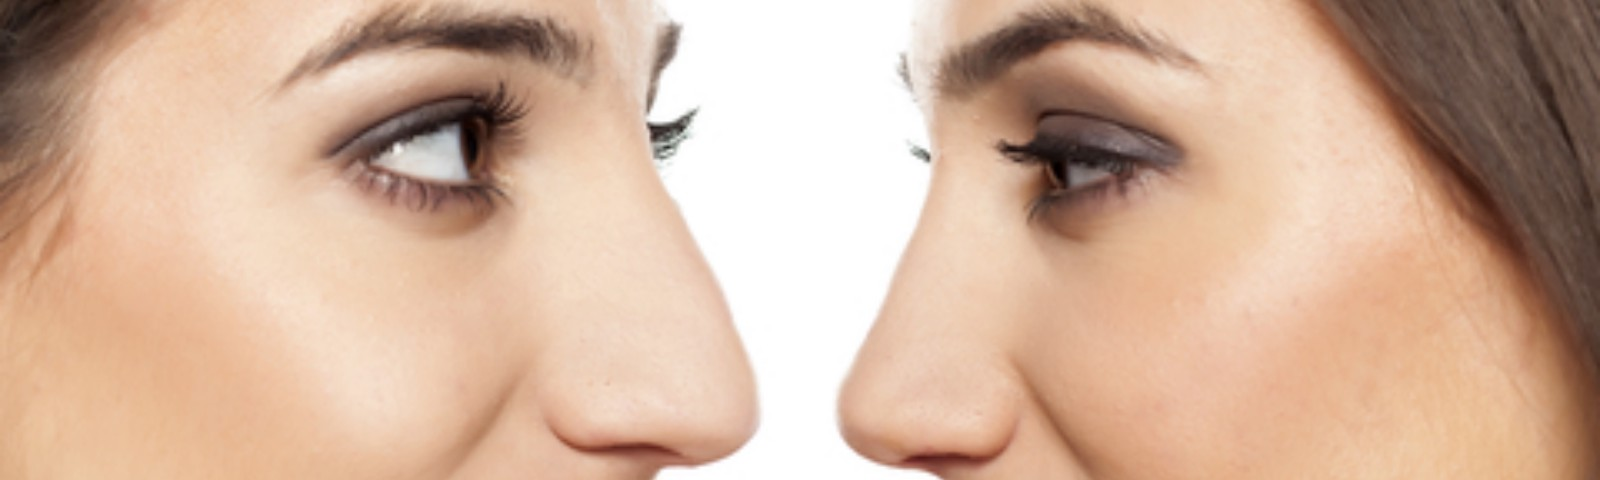 Interesting facts you didn't know about rhinoplasty